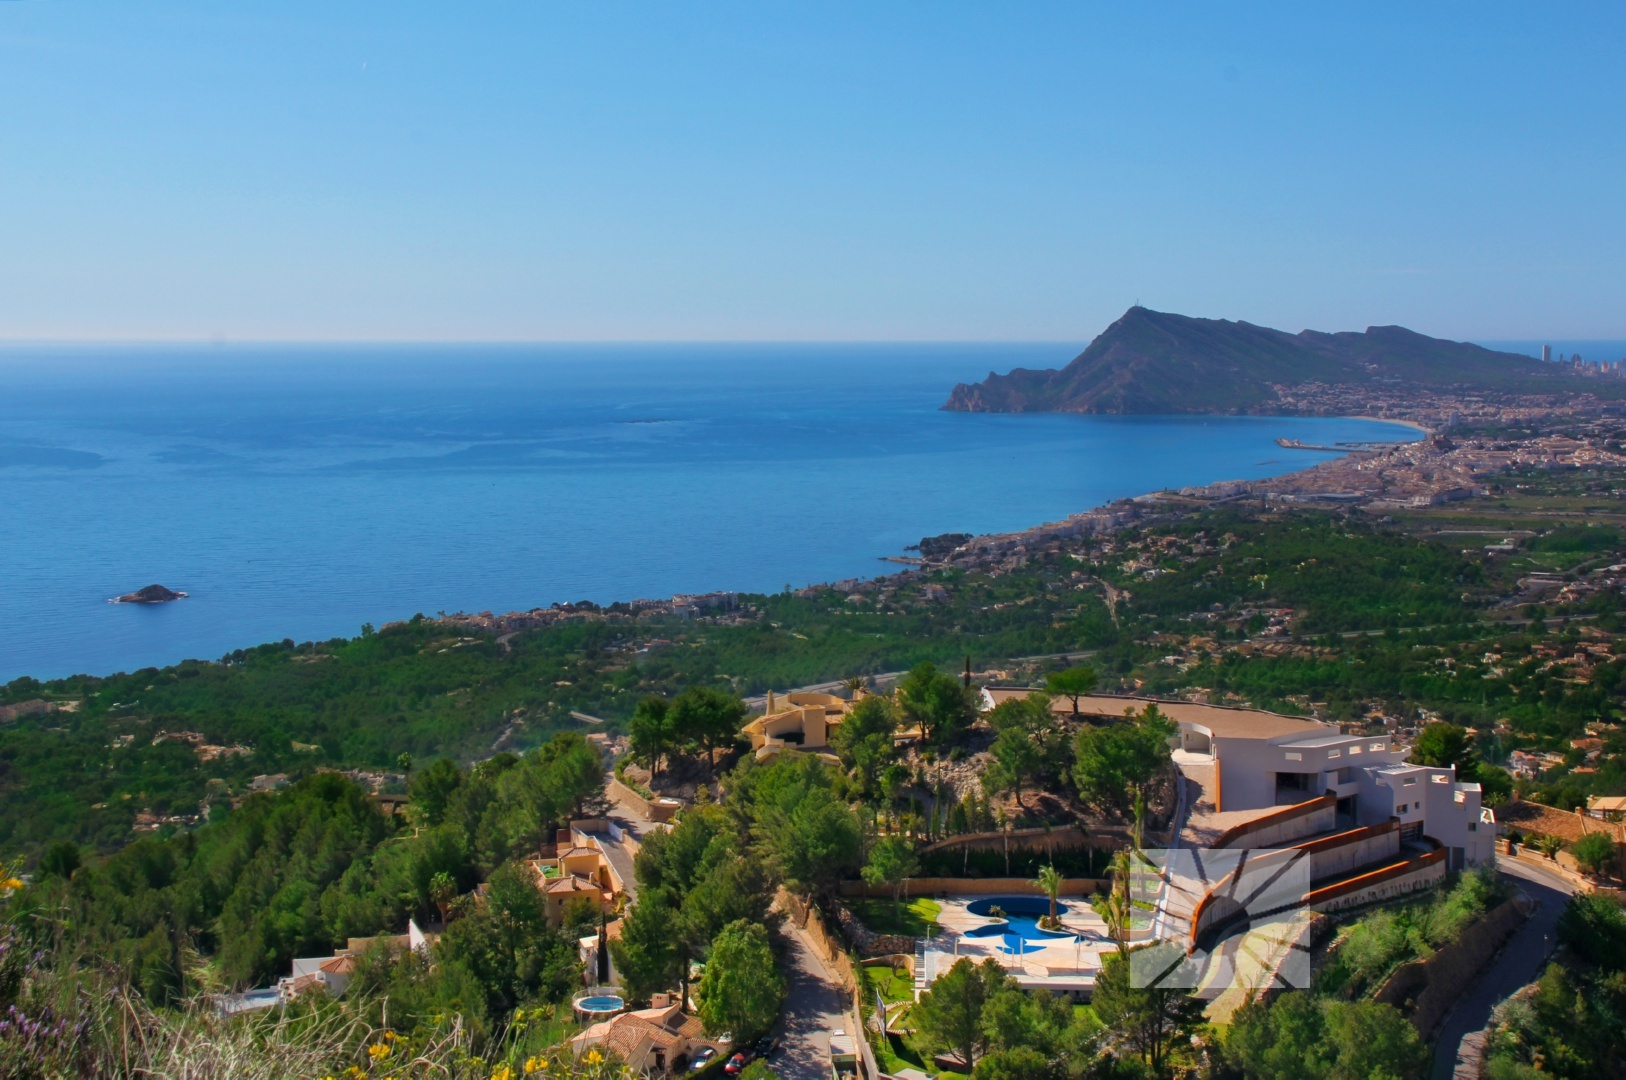 Marketing Buitenkant Kijk naar Altea Luxe Altea H1 Sierra Altea OCEAN SUITES ALTEA